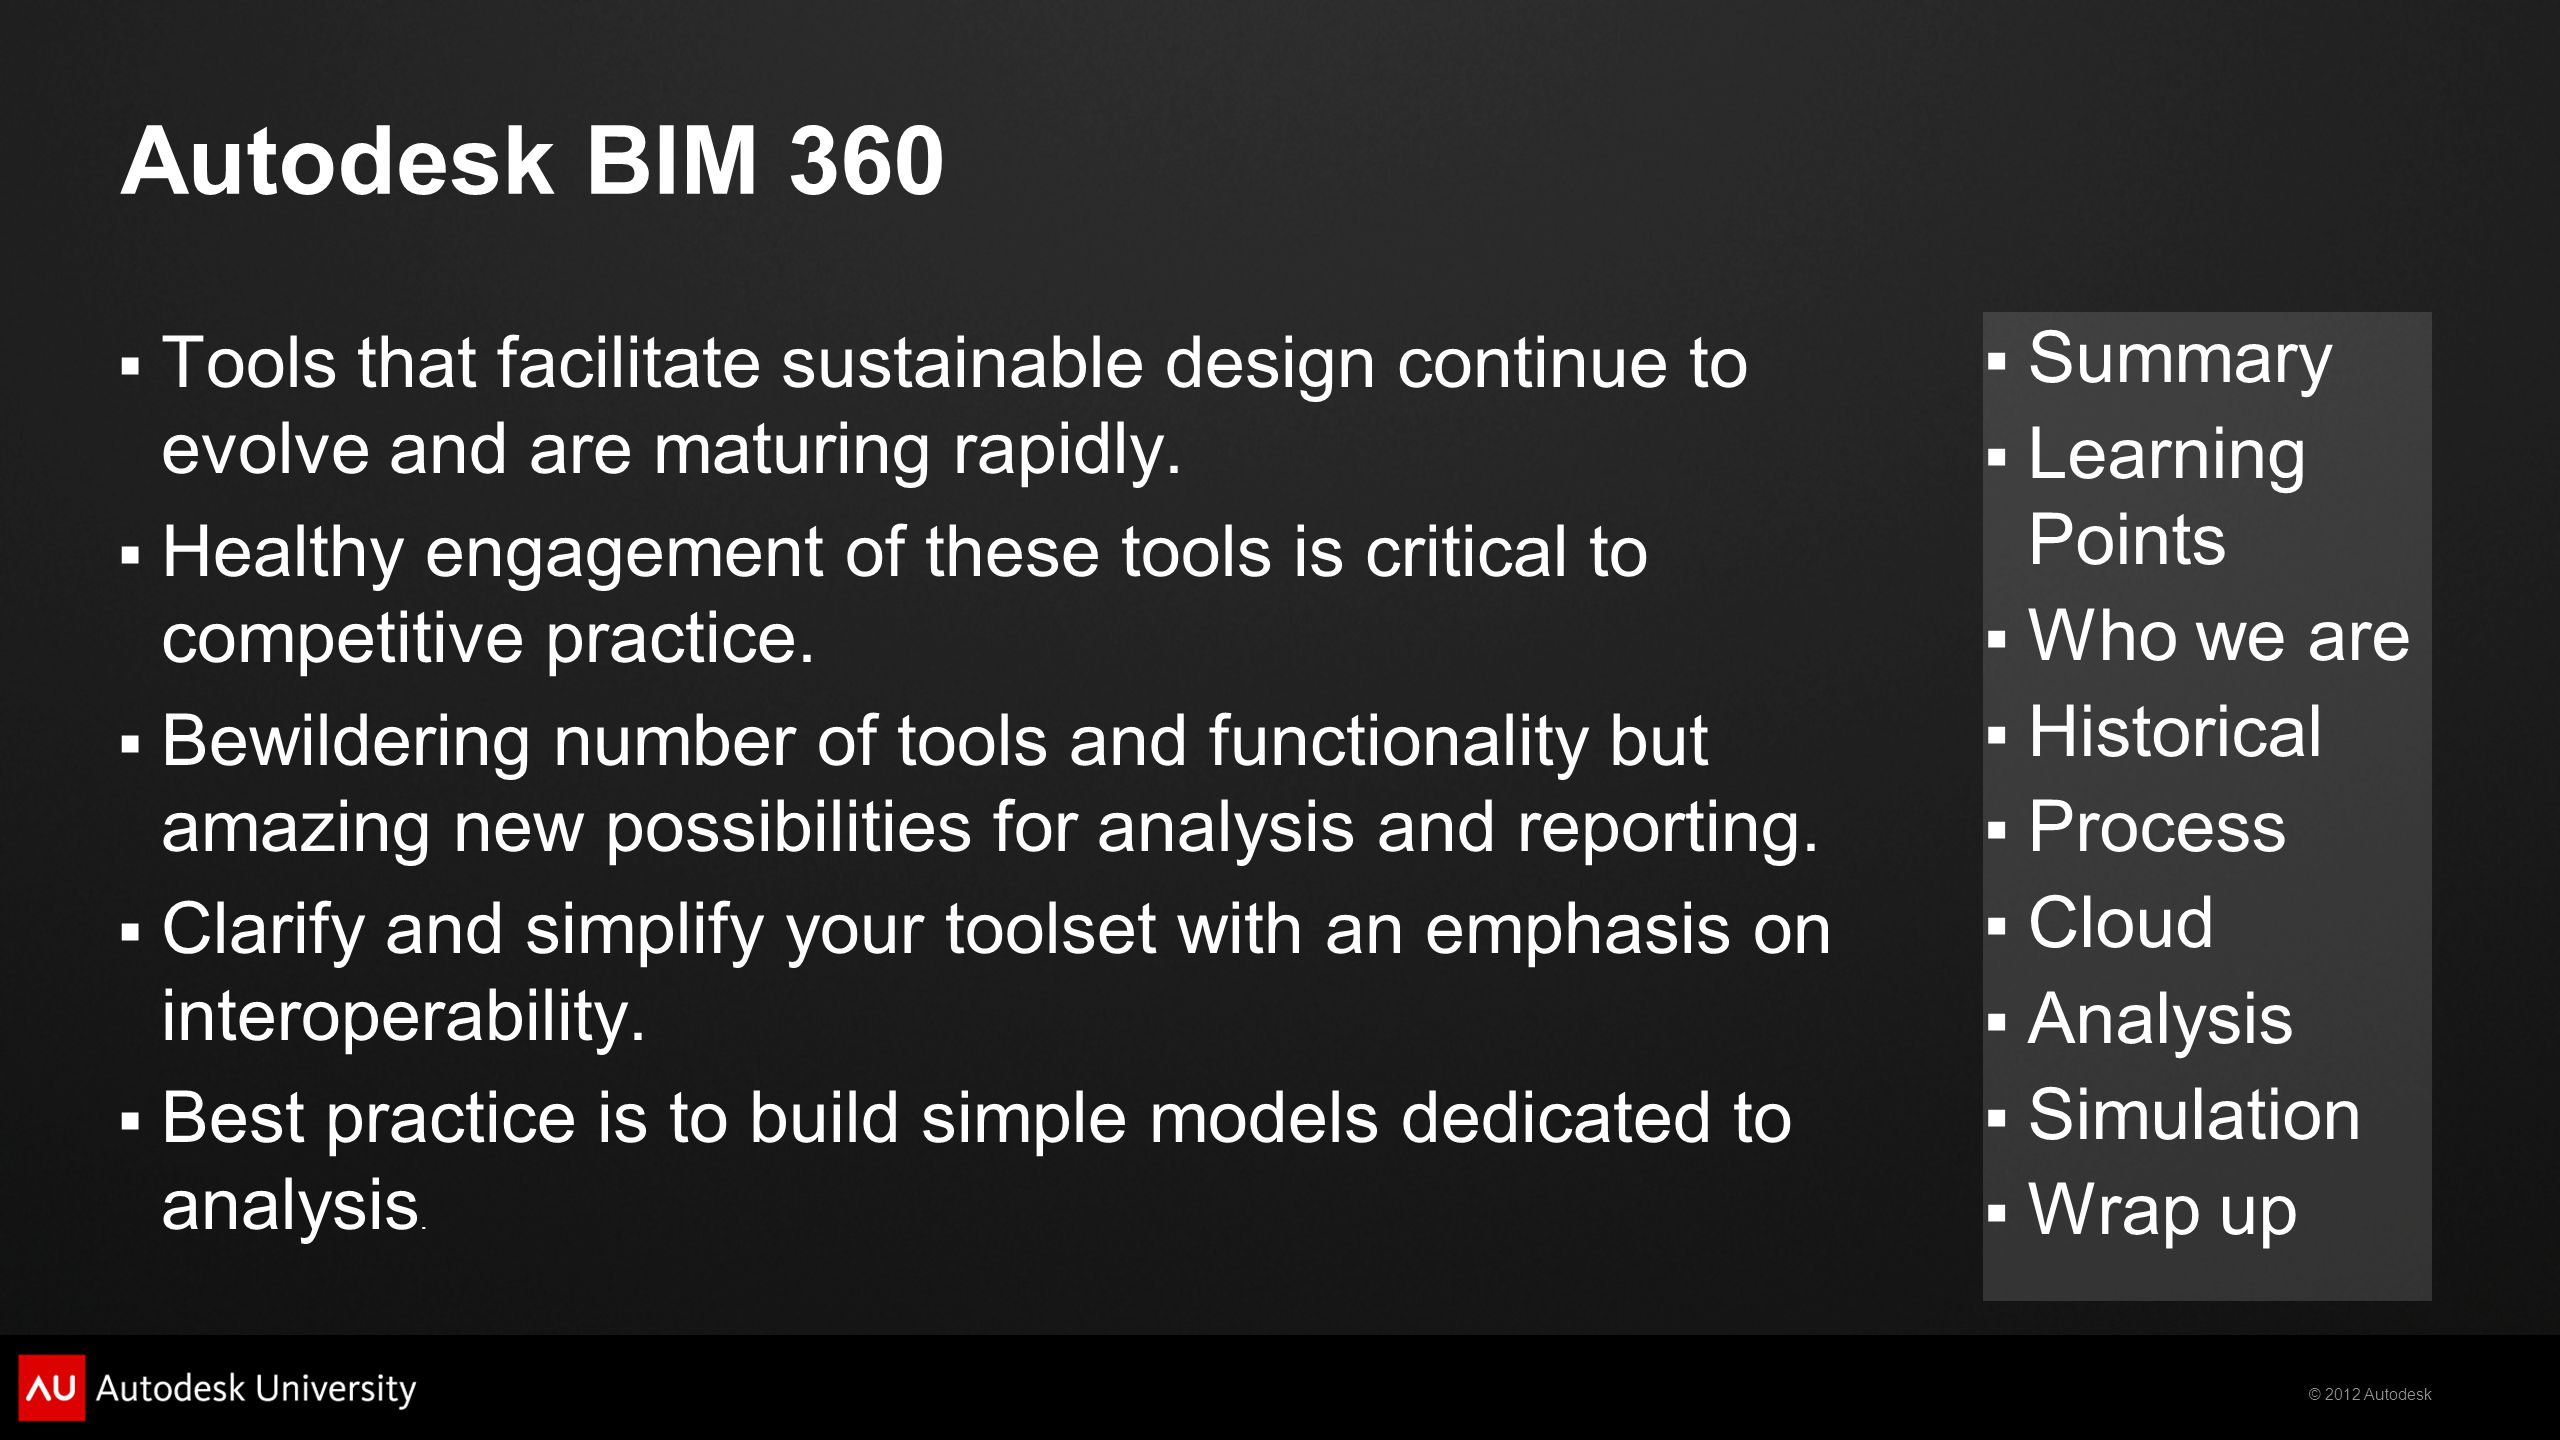 © 2012 Autodesk  Summary  Learning Points  Who we are  Historical  Process  Cloud  Analysis  Simulation  Wrap up Autodesk BIM 360  Tools that facilitate sustainable design continue to evolve and are maturing rapidly.